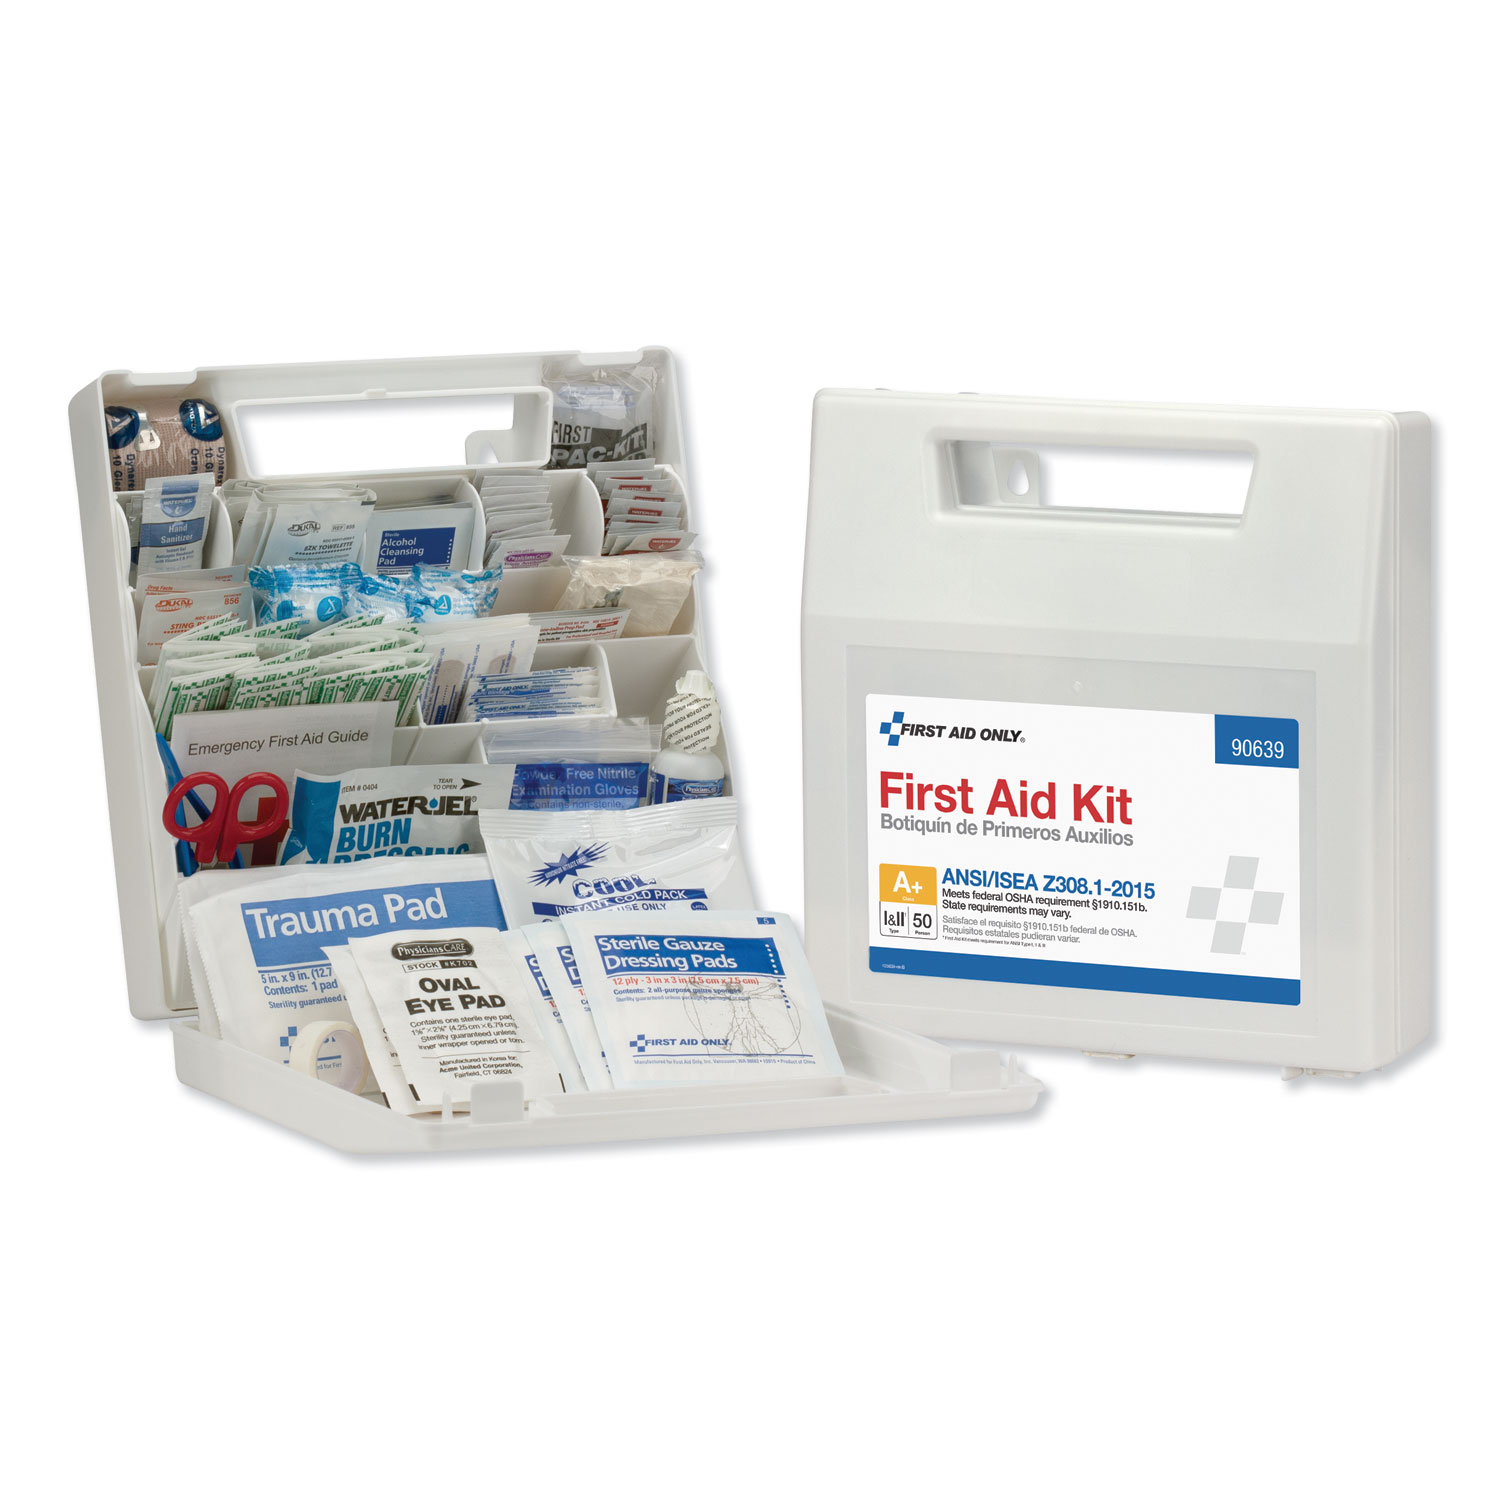 ANSI Class A+ First Aid Kit for 50 People, 183 Pieces - Zyn's